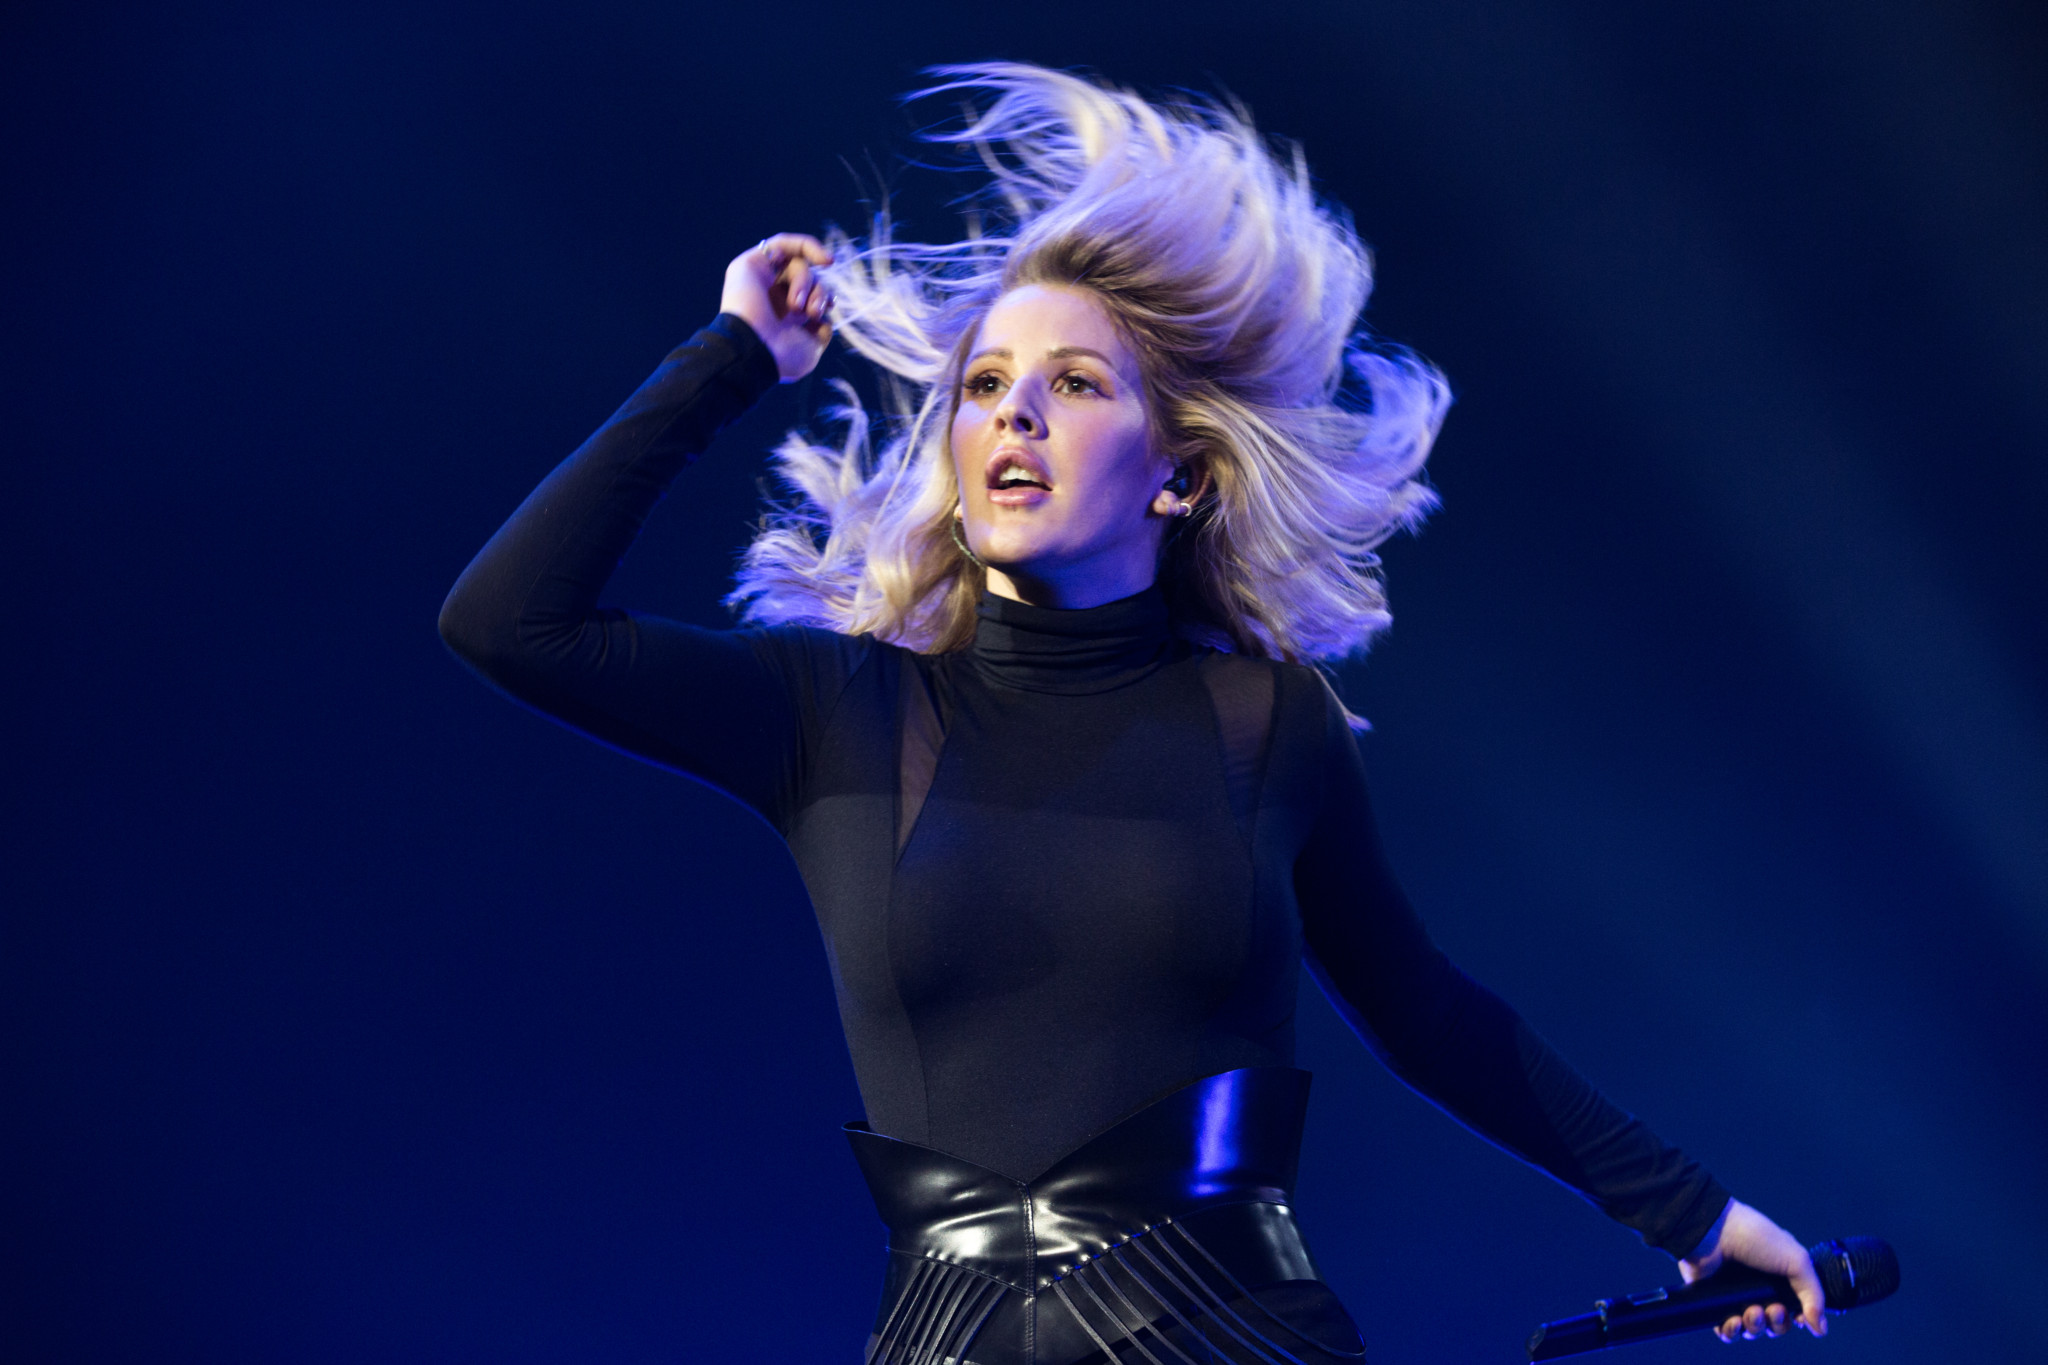 Ellie Goulding in concert at Motorpoint Arena, Nottingham, Britain - 13 March 2016